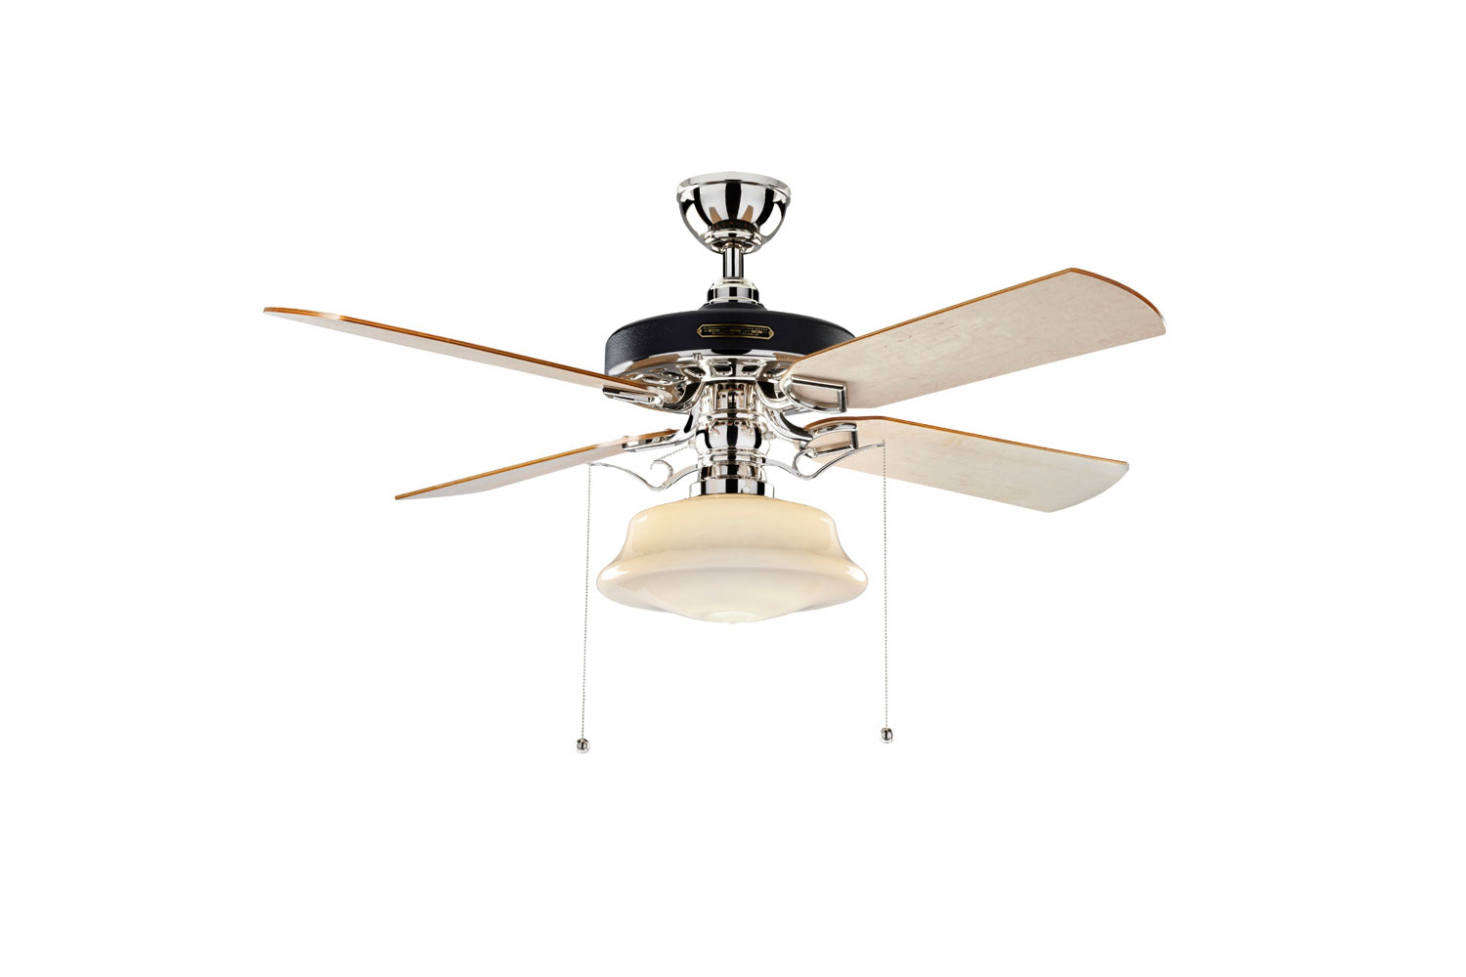 The Heron Ceiling Fan With Low Profile Shade From Rejuvenation Is One Of Many